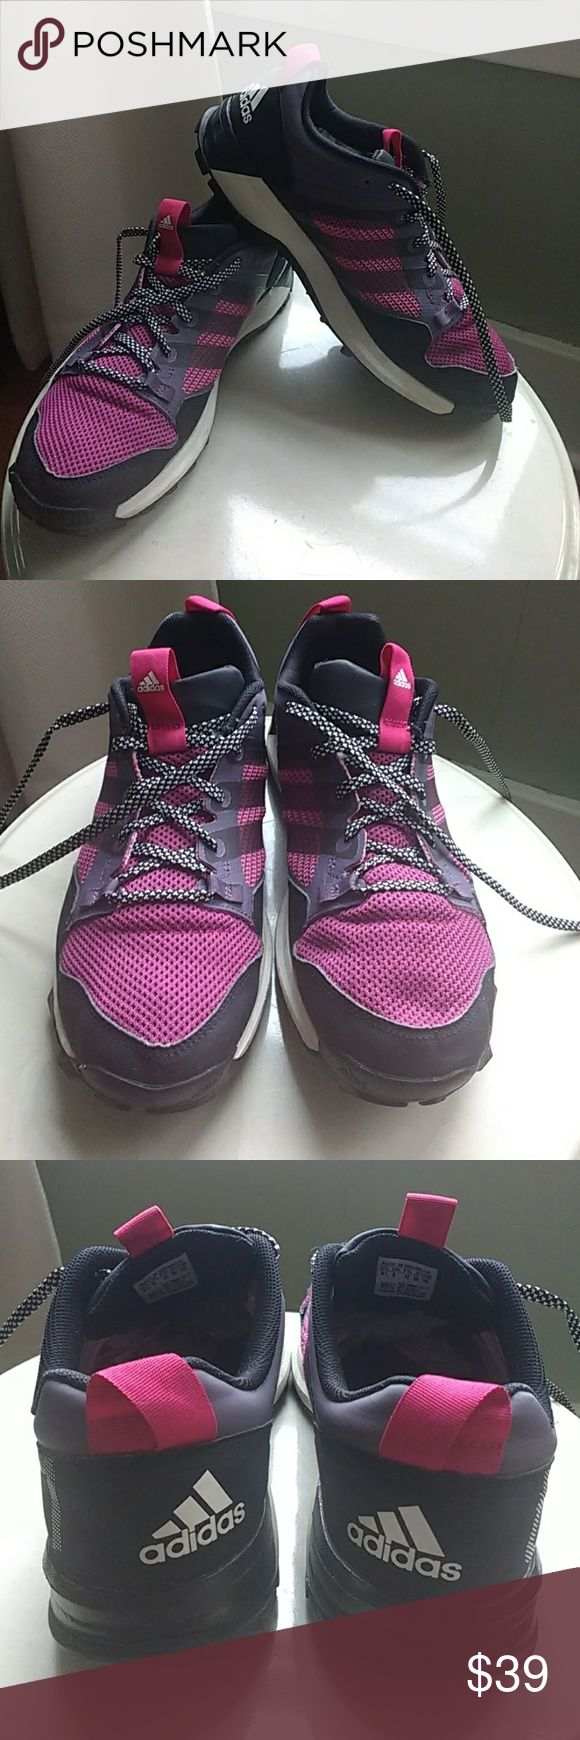 Adidas trail shoes EUC. Fuscia, purple, black and white trail runners with fun white and black print laces. Excellent traction on uneven terrain and very attractive color scheme. adidas Shoes Athletic Shoes